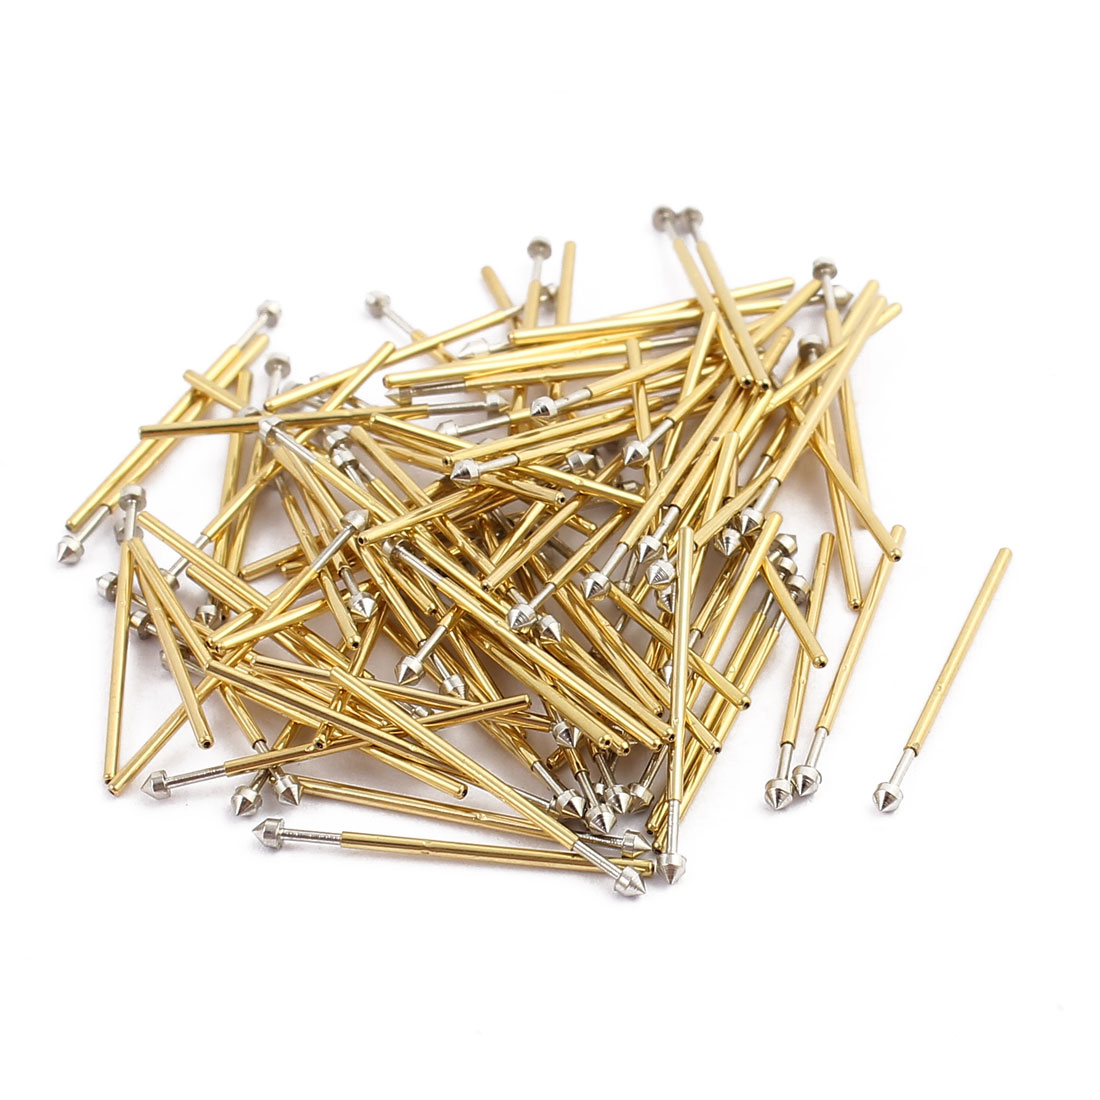 100pcs PP50-E3 0.68mm Dia 16.8mm Length Metal Spring Pressure Test Probe Needle